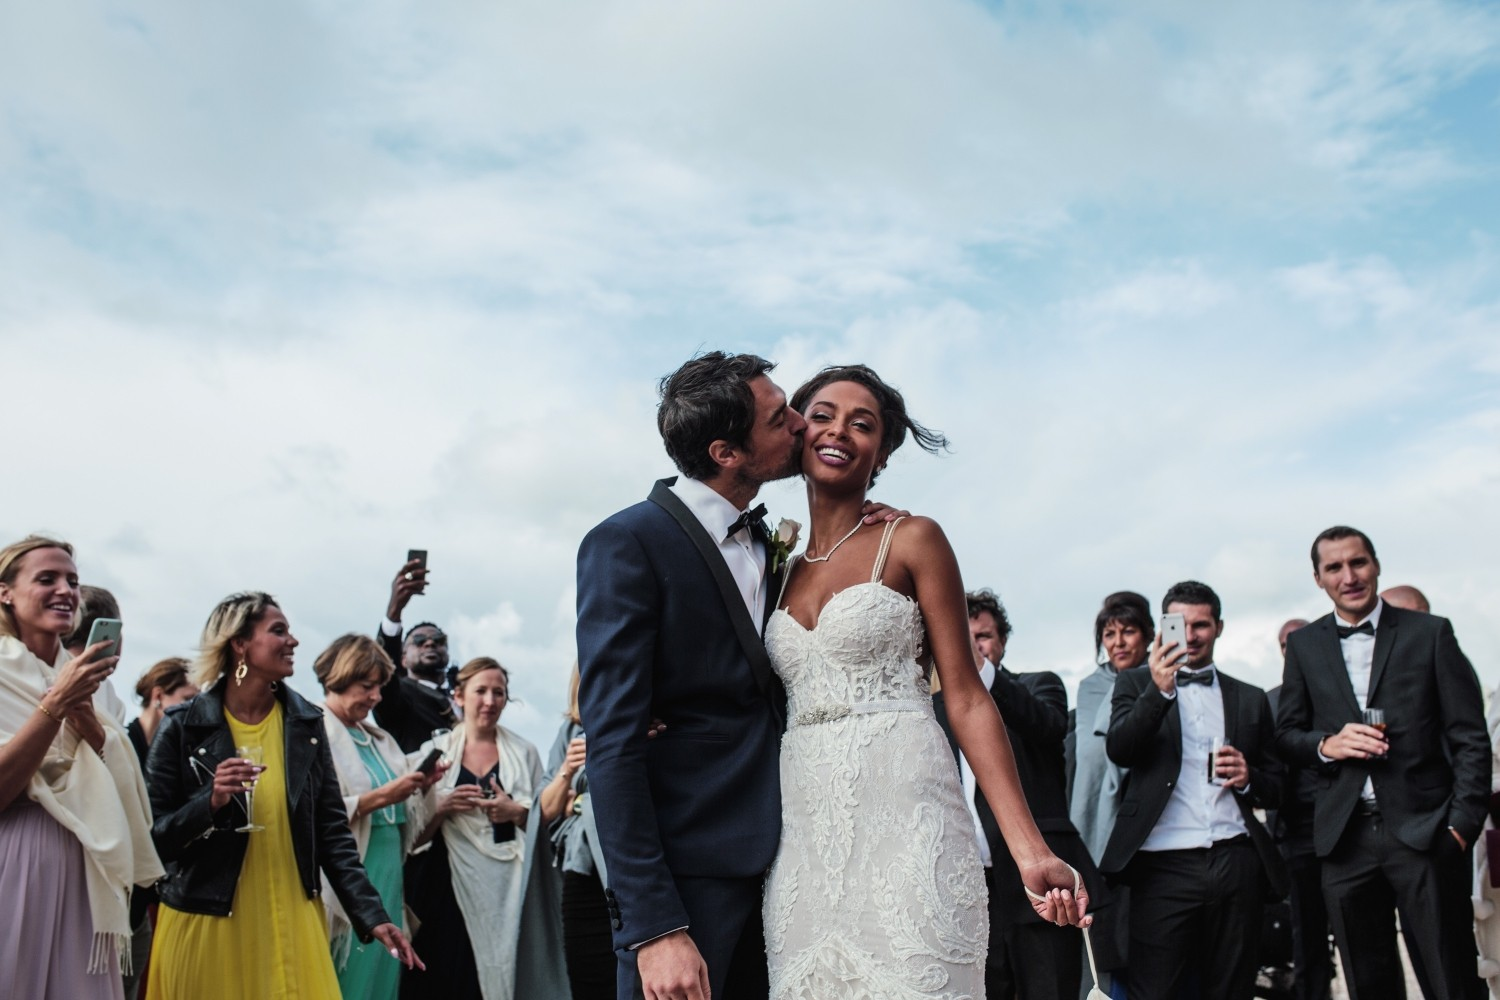 Airsnap, wedding photography and videography — Susan & Jeremy, Hôtel du Palais, Biarritz